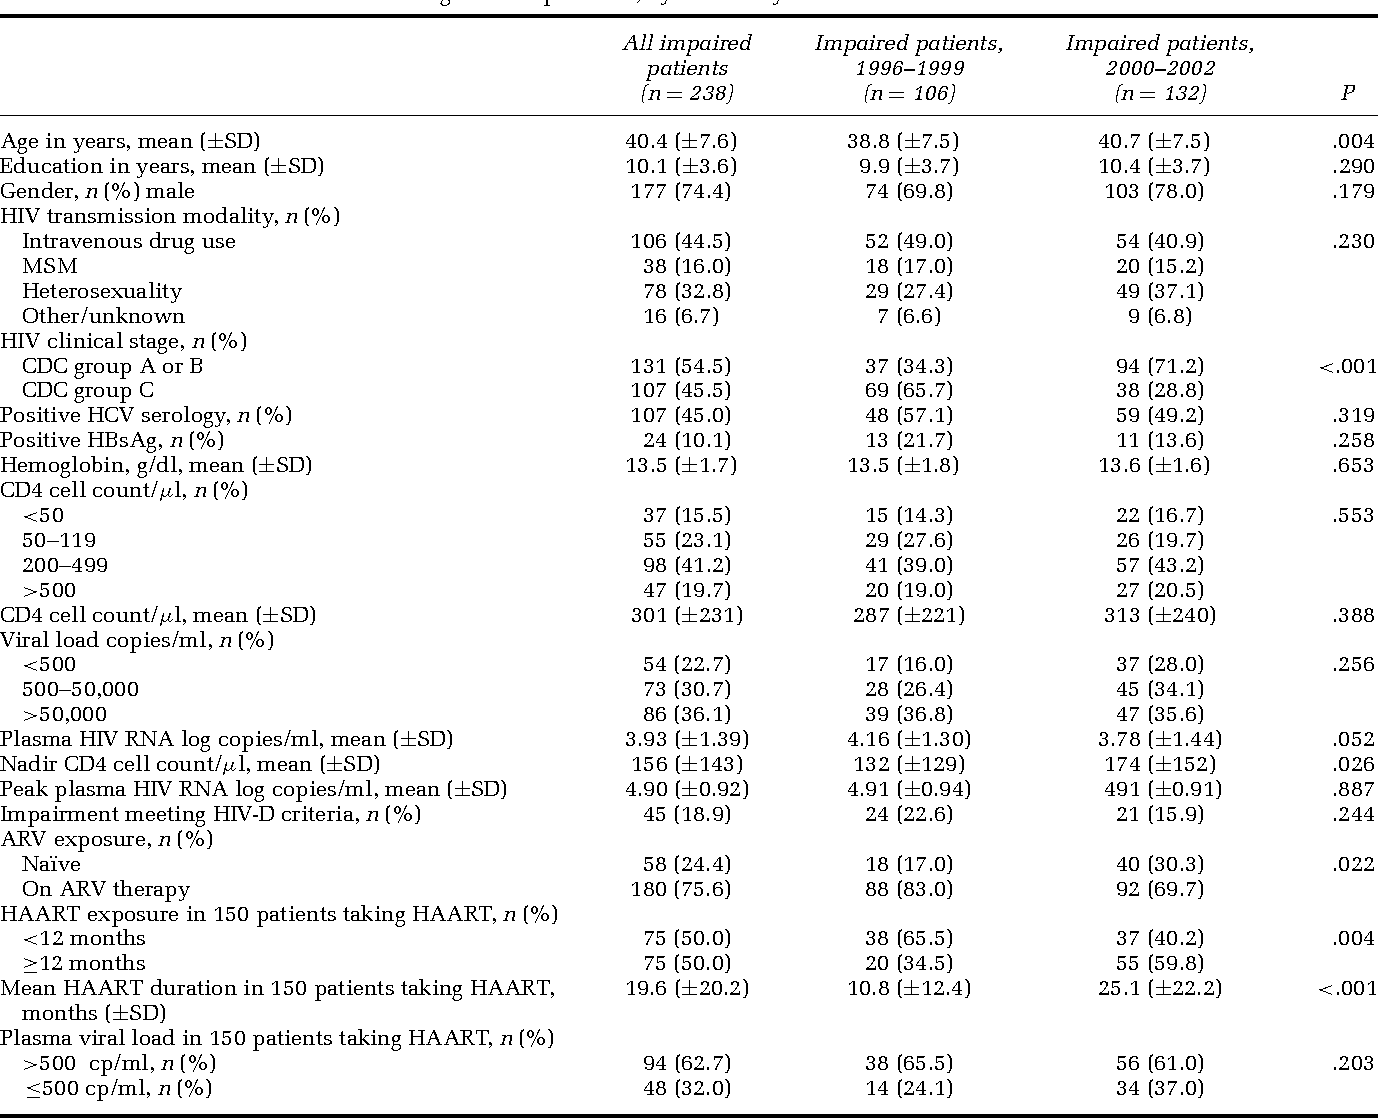 Table 2 Variables associated with neurocognitive impairment, by calendar year